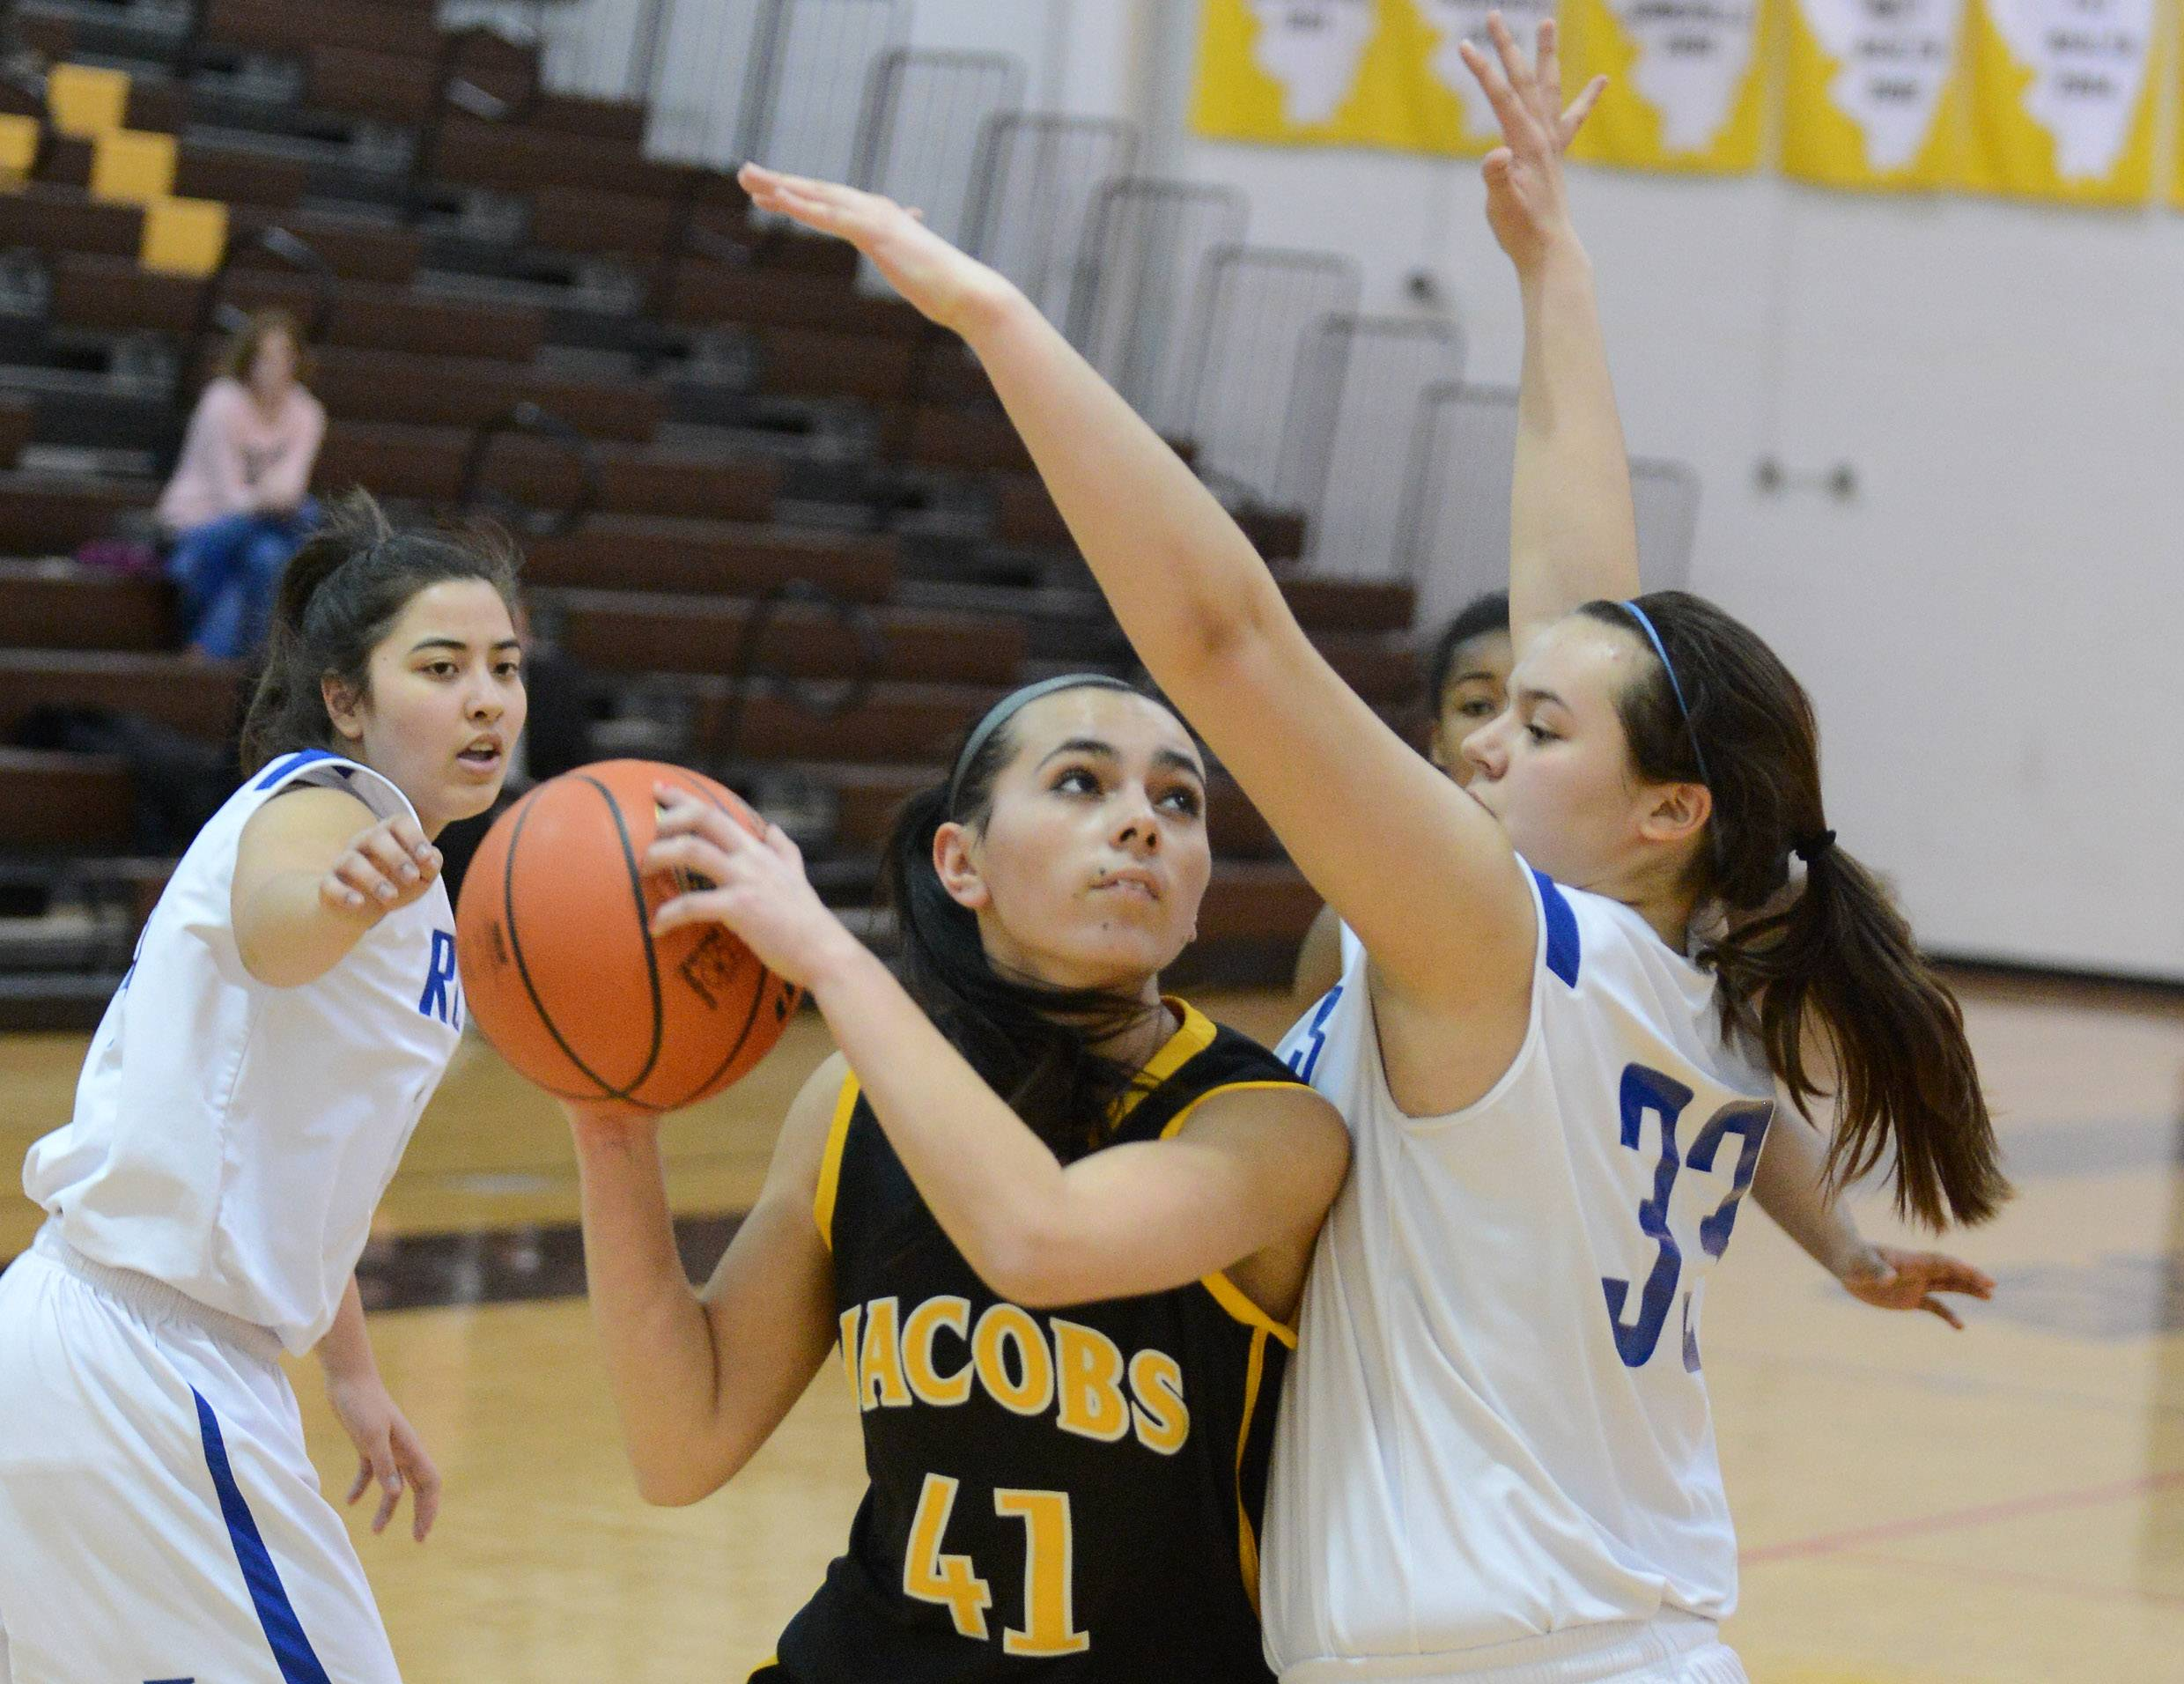 Images from the Larkin vs. Jacobs girls regional basketball game Monday, February 17, 2014 in Algonquin.